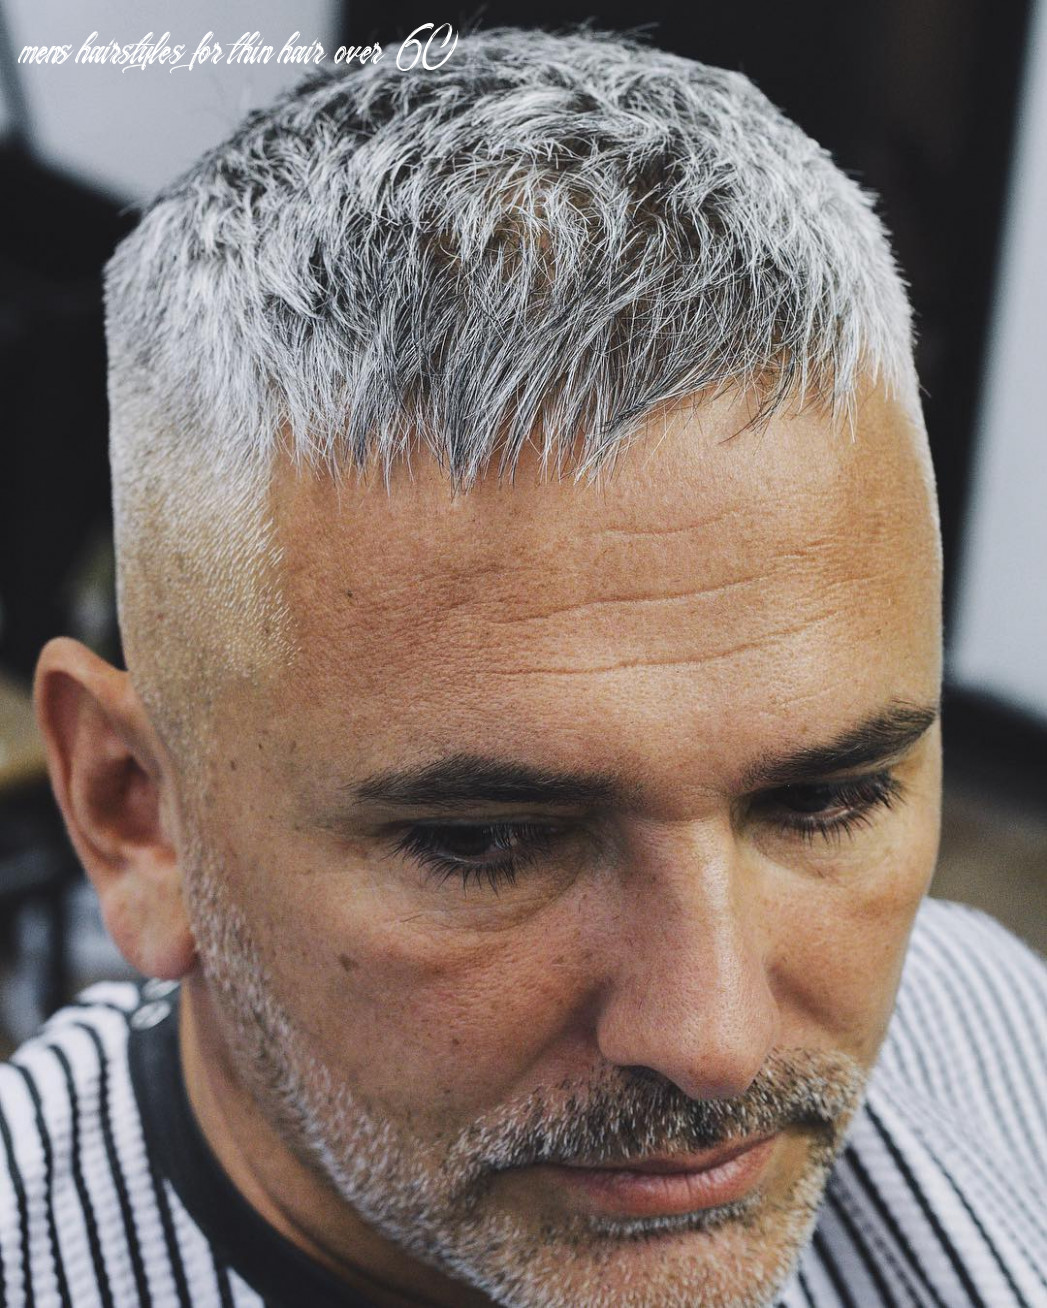 10 cool hairstyles haircuts for older men (10 update) mens hairstyles for thin hair over 60